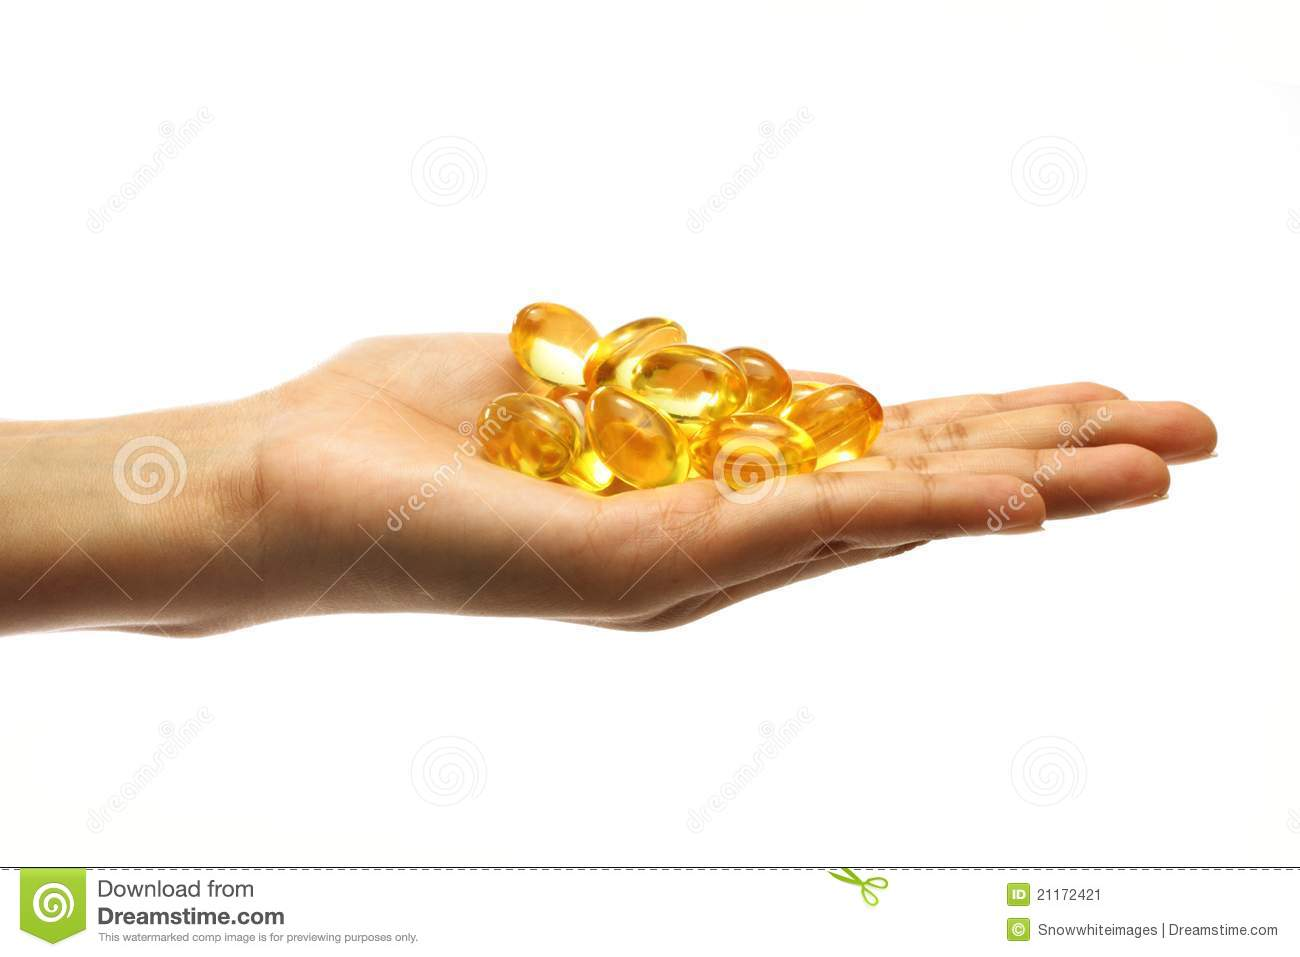 cod liver oil pills stock image image 21172421 Teddy Bear Dog Breed Teddy Bear Puppies for Adoption